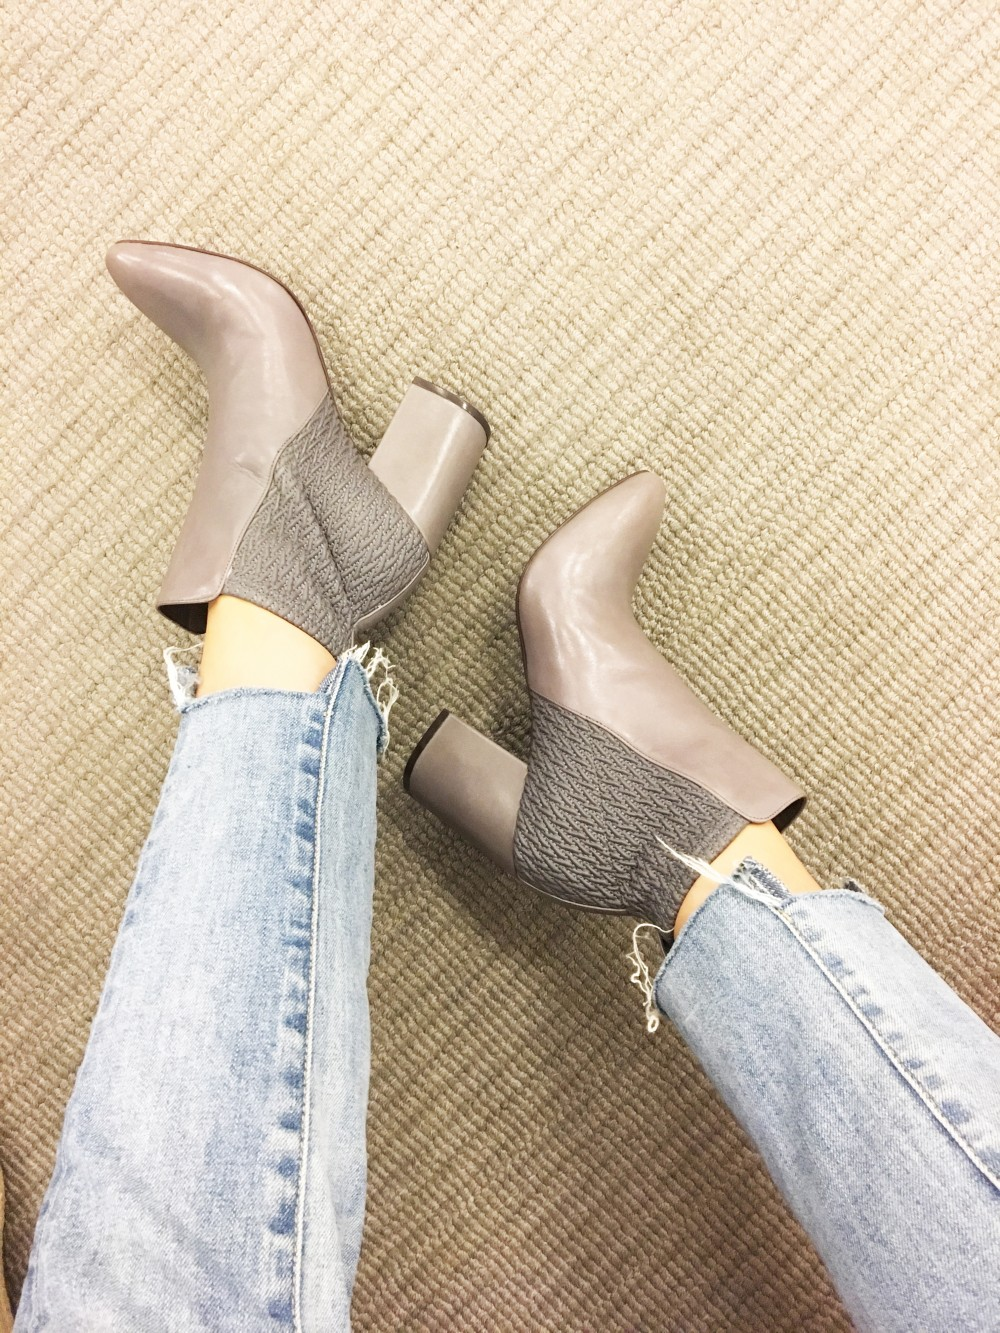 Dressing Room Diaries- Nordstrom Anniversary Sale-Fall Booties-Blogger Picks for the NSale-Nordstrom Sale-Fall Style-Fall Fashion 2017-Have Need Want 2